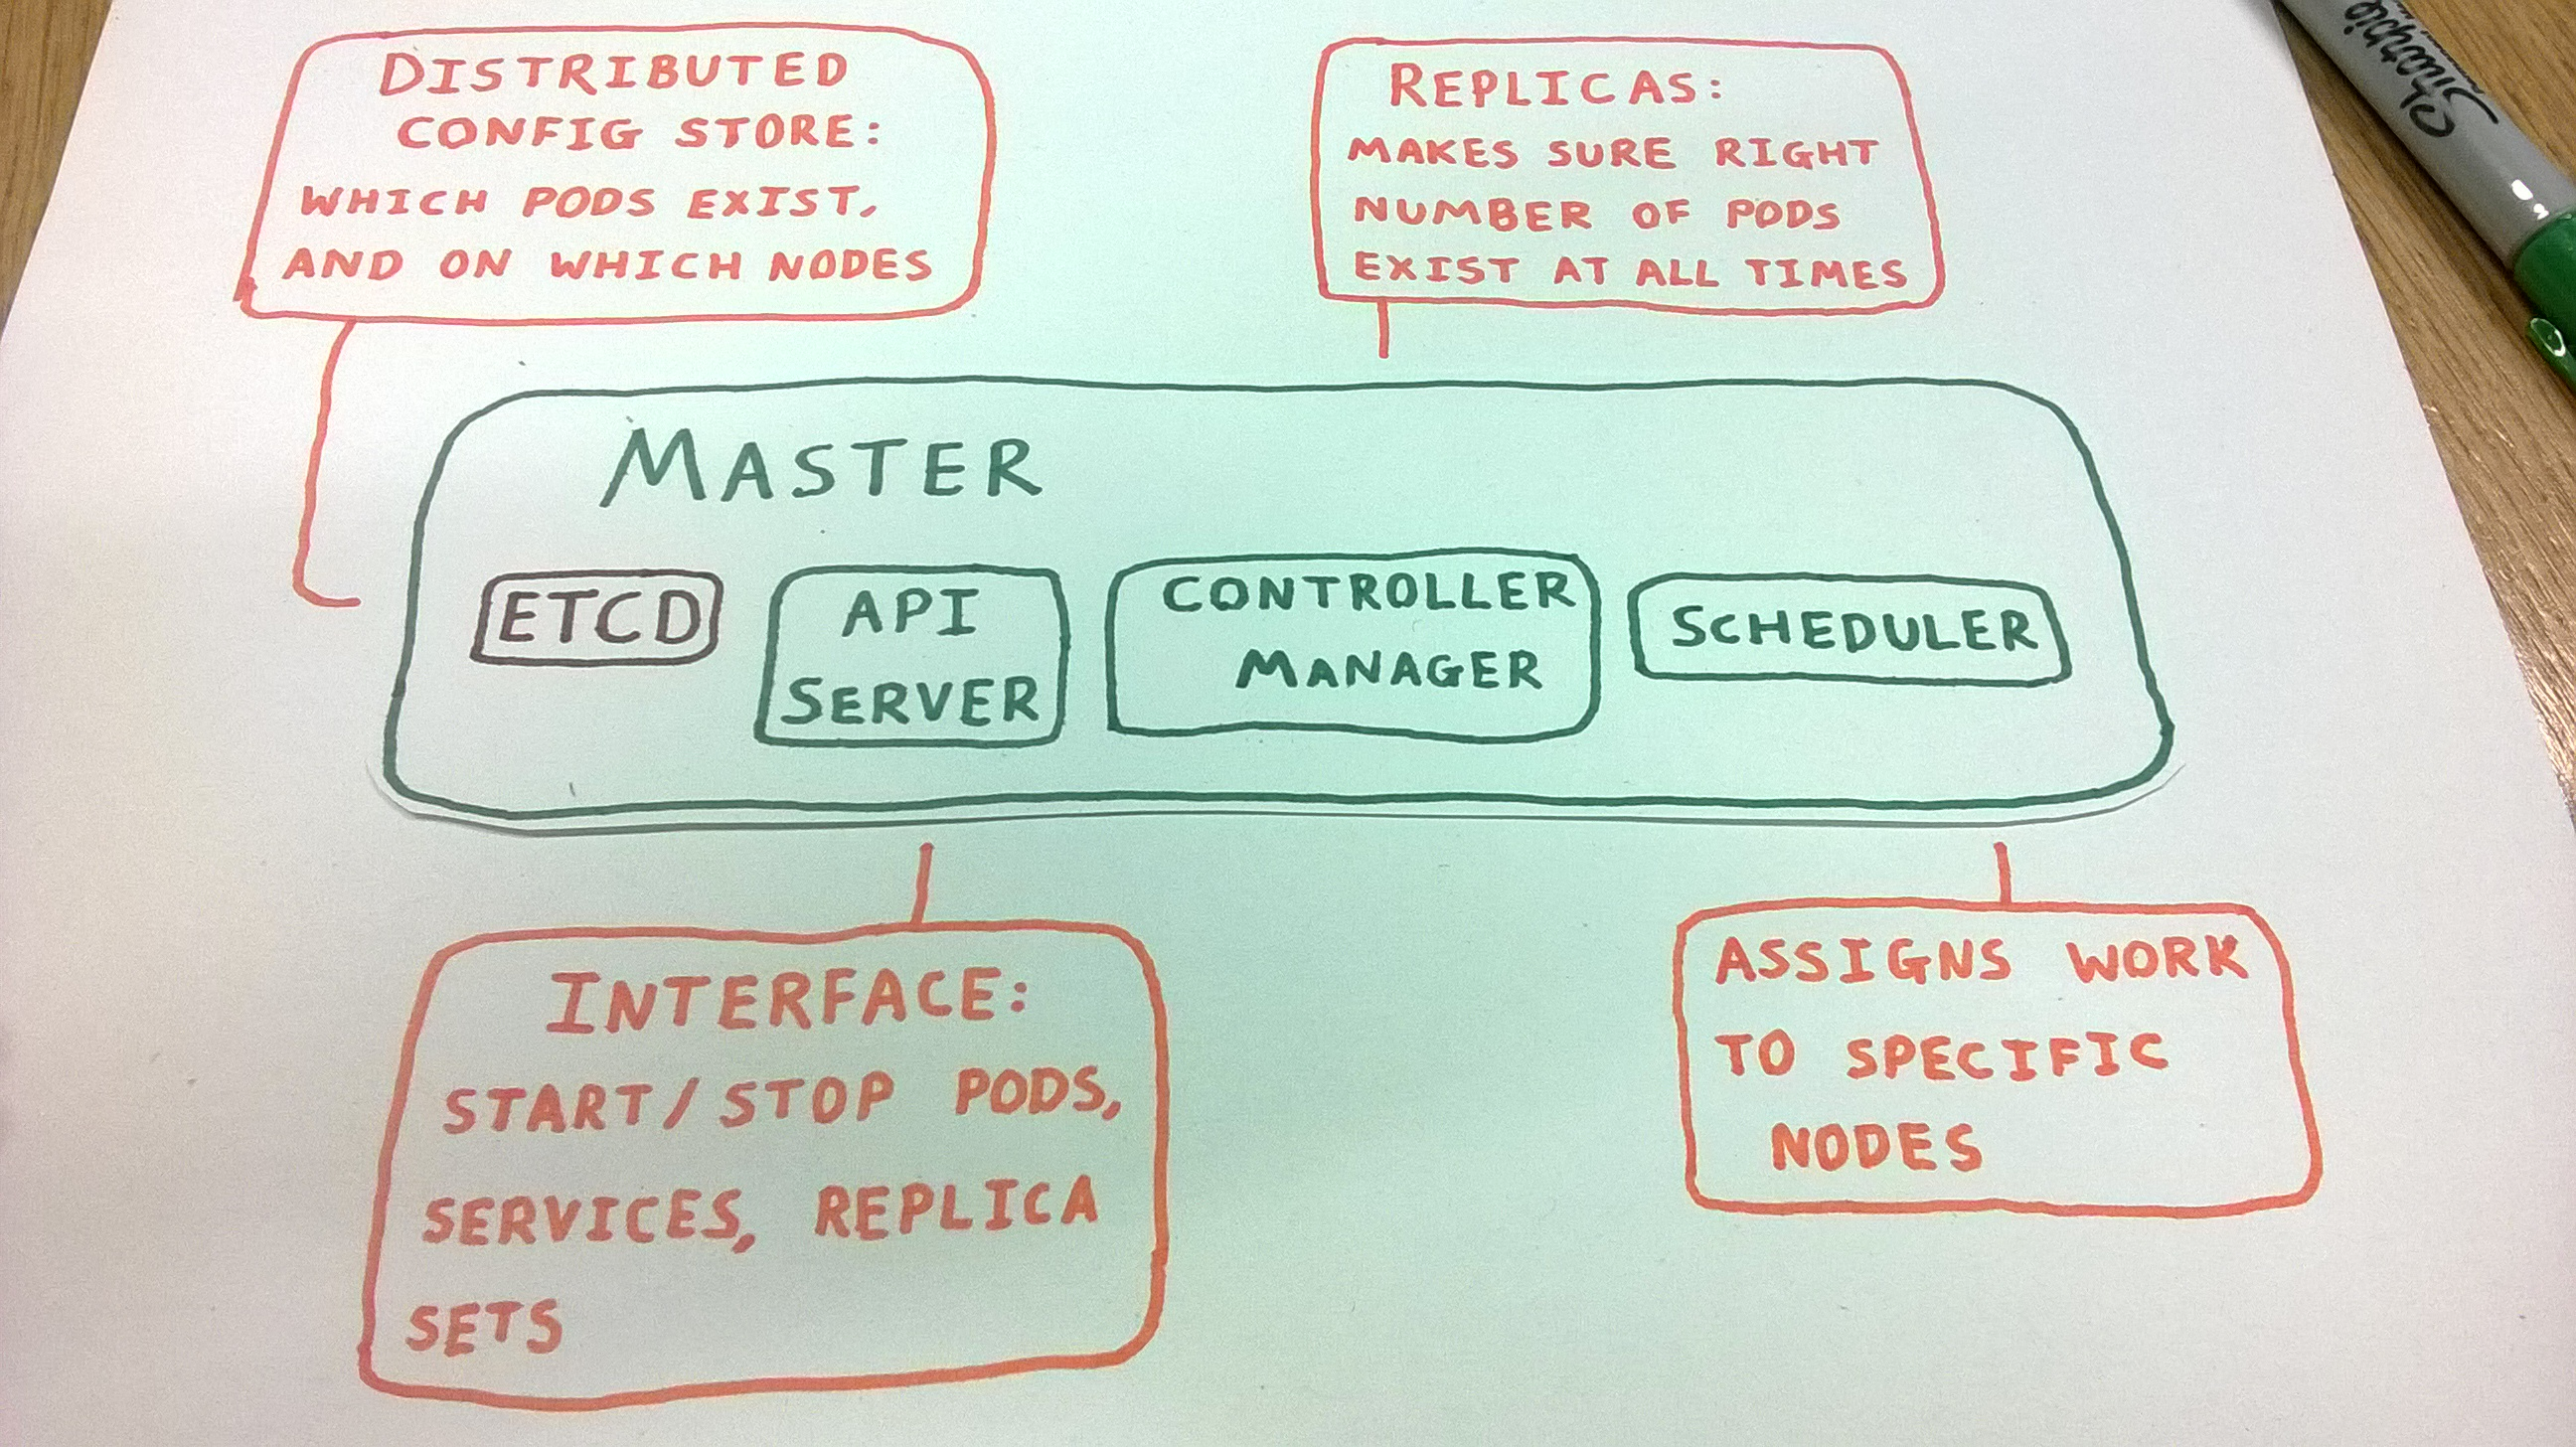 master node contains etcd, api server, controller manager and scheduler